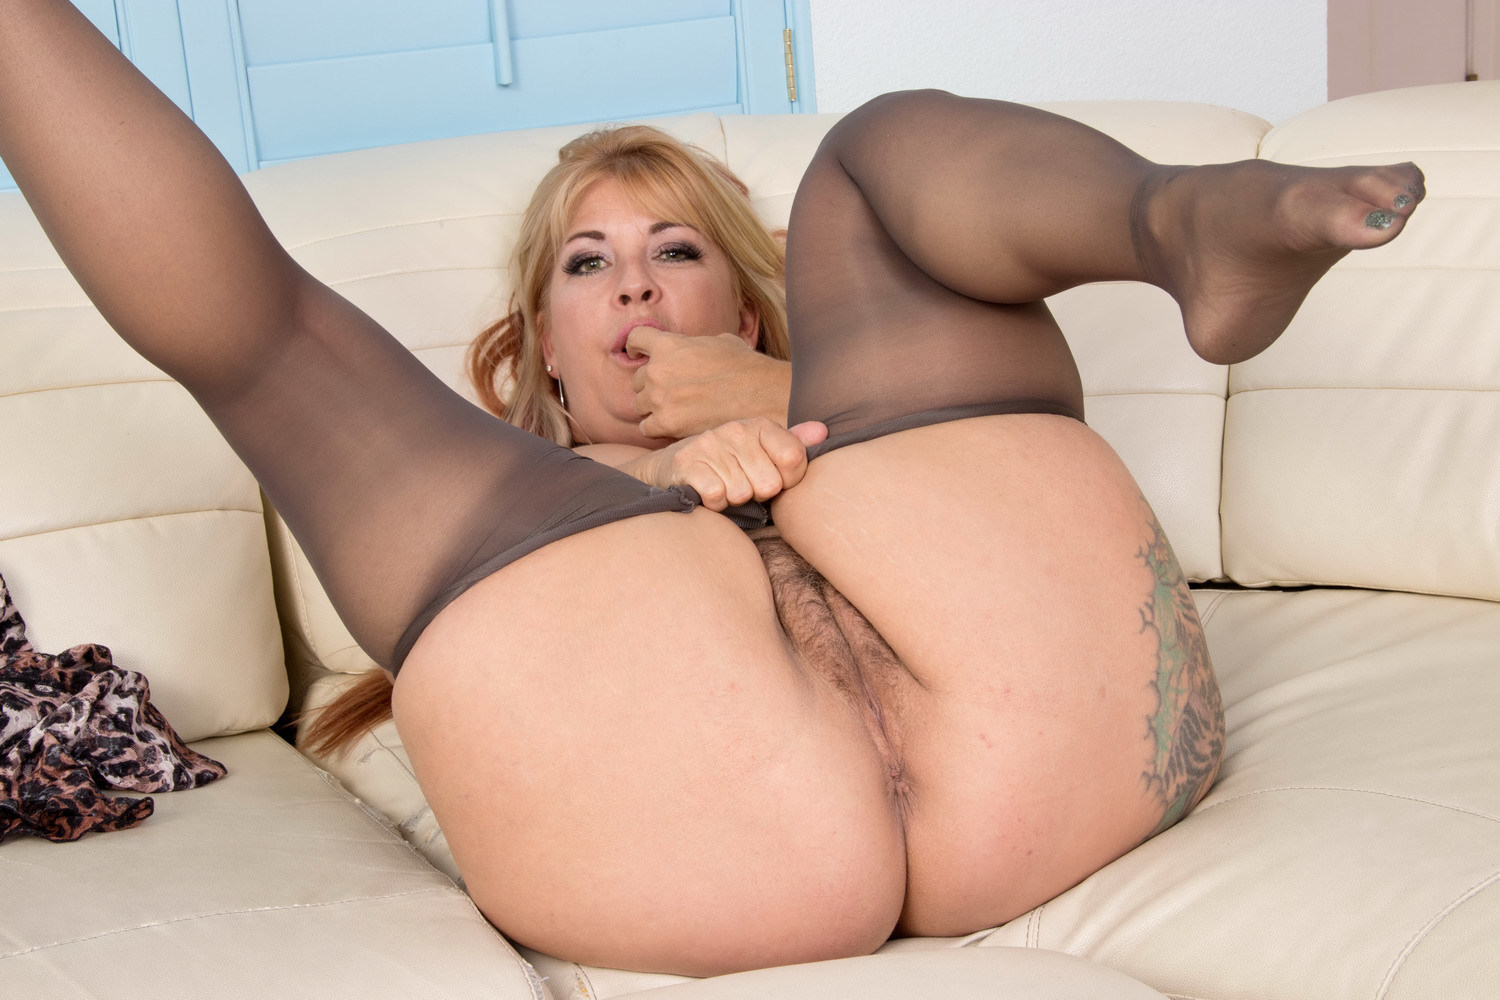 Milf mom mature pantyhose movies